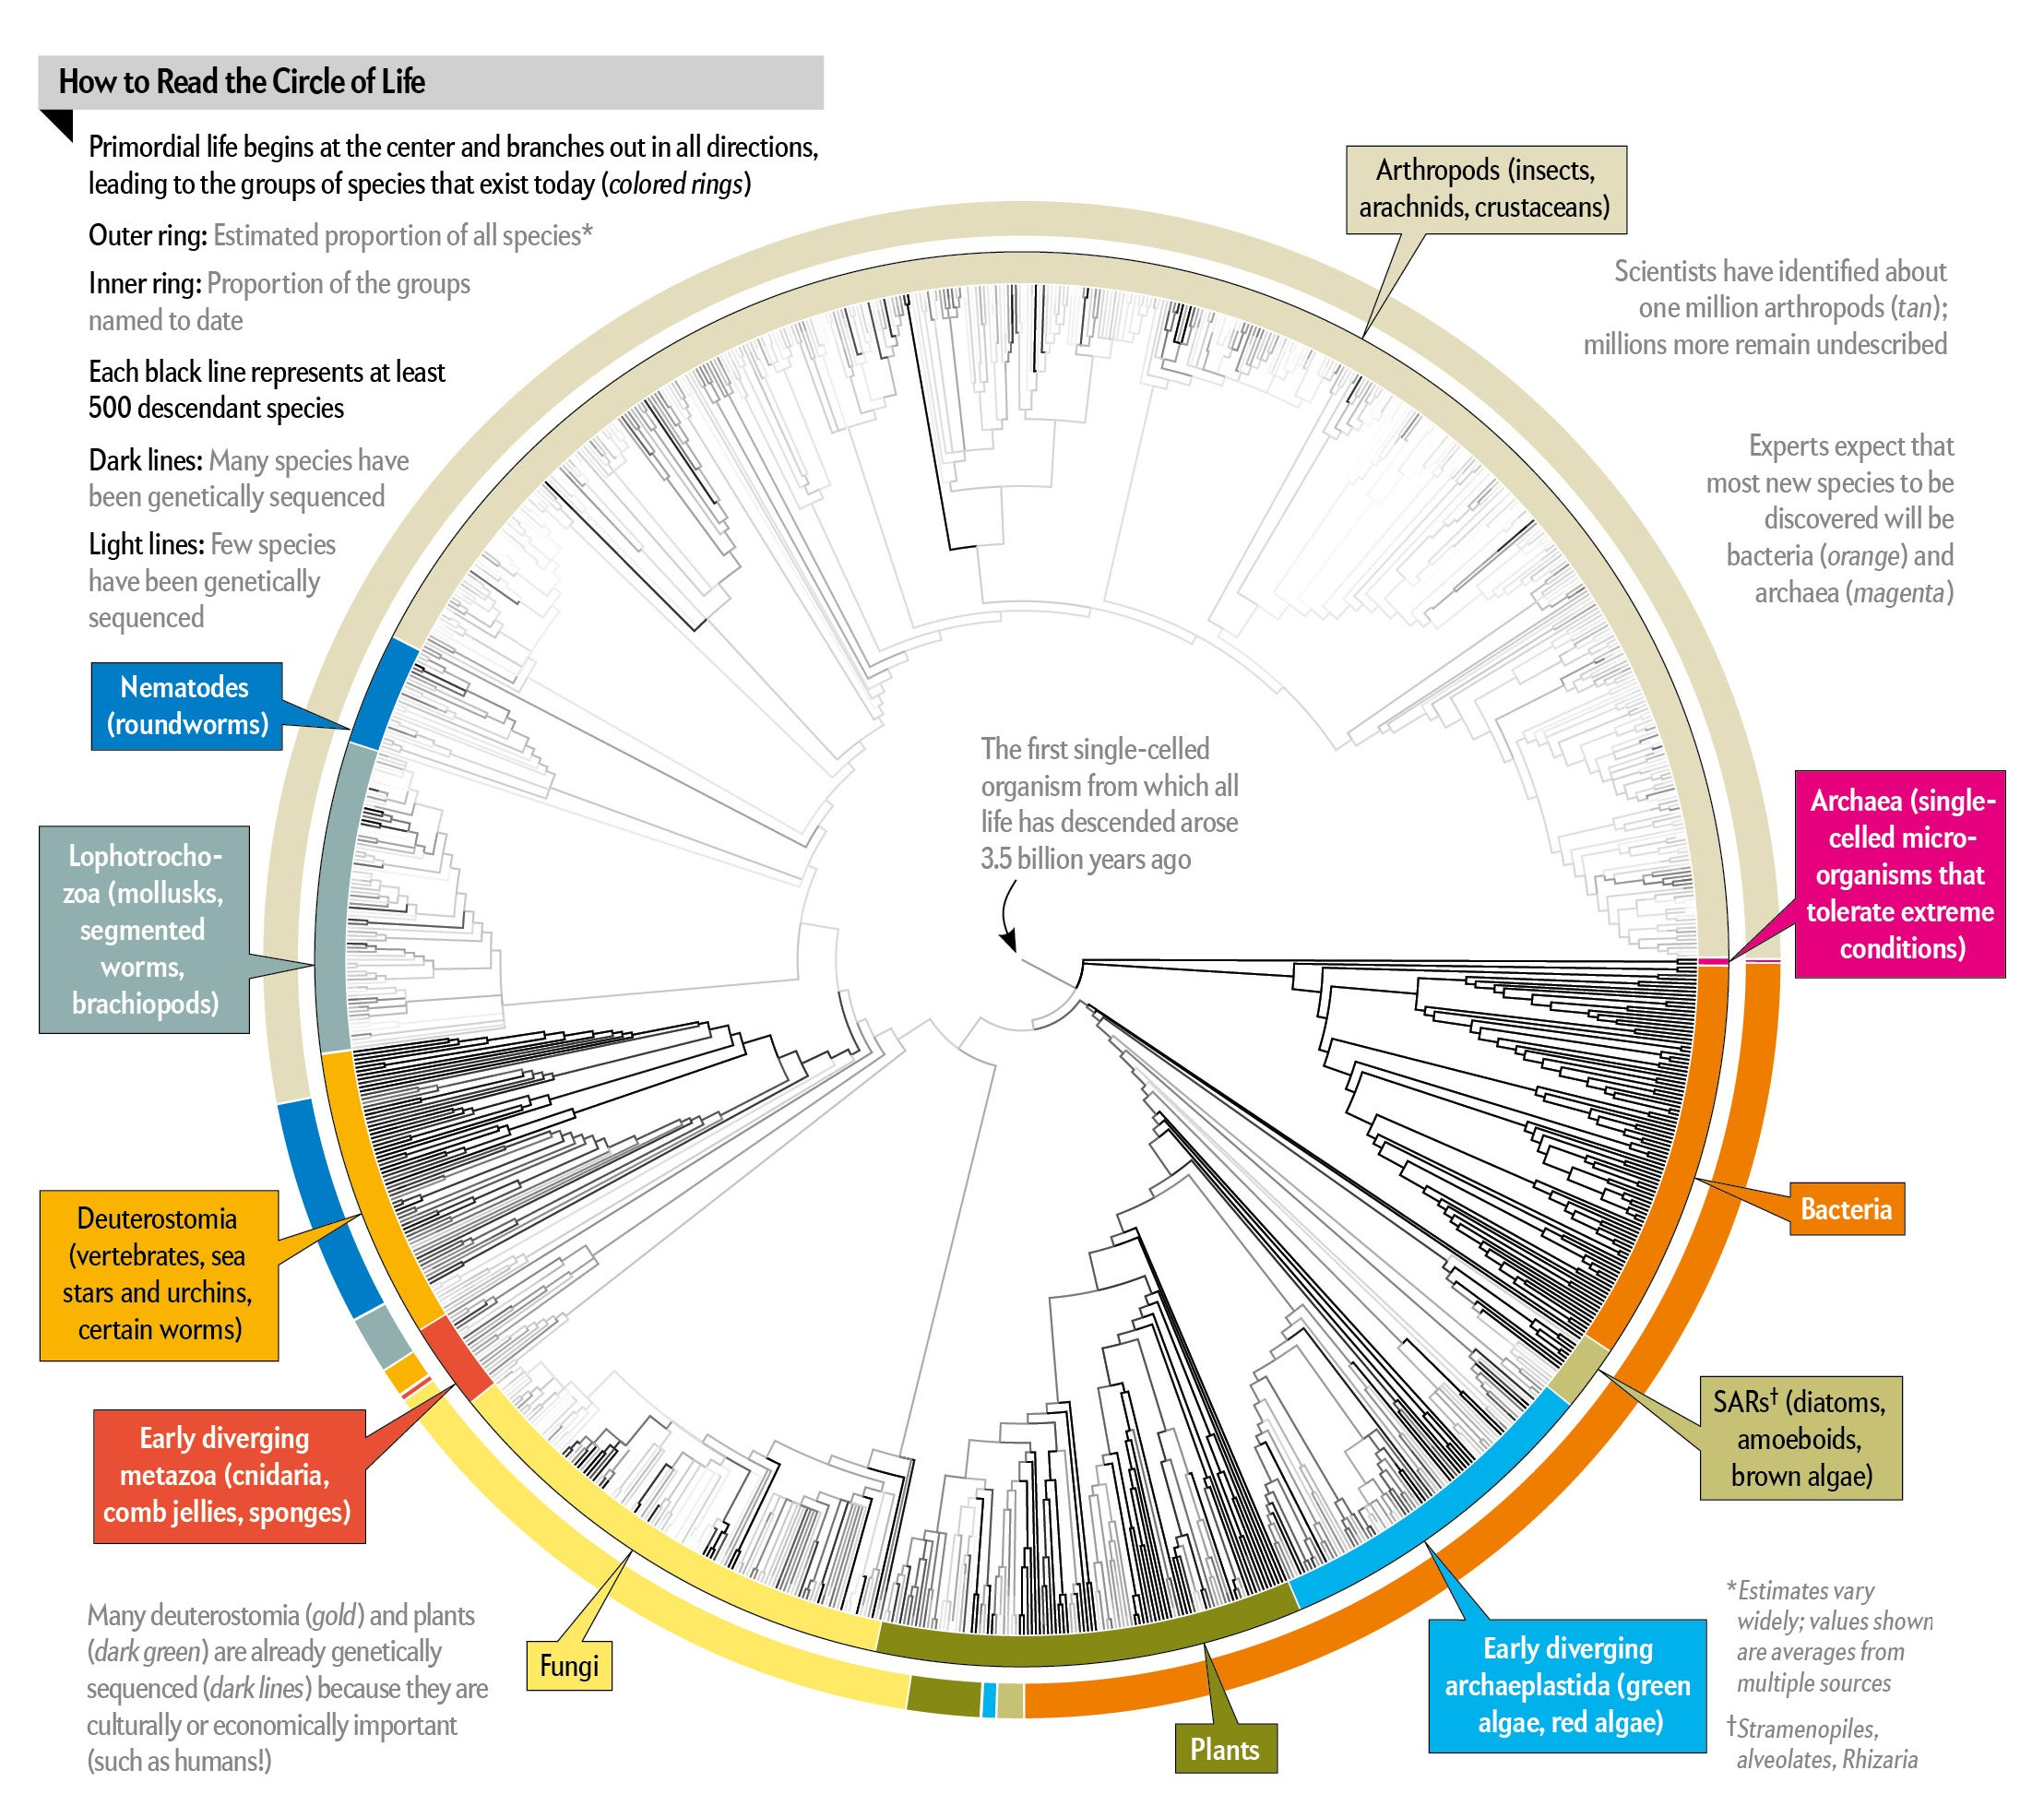 All 2.3 Million Species Are Mapped into a Single Circle of Life